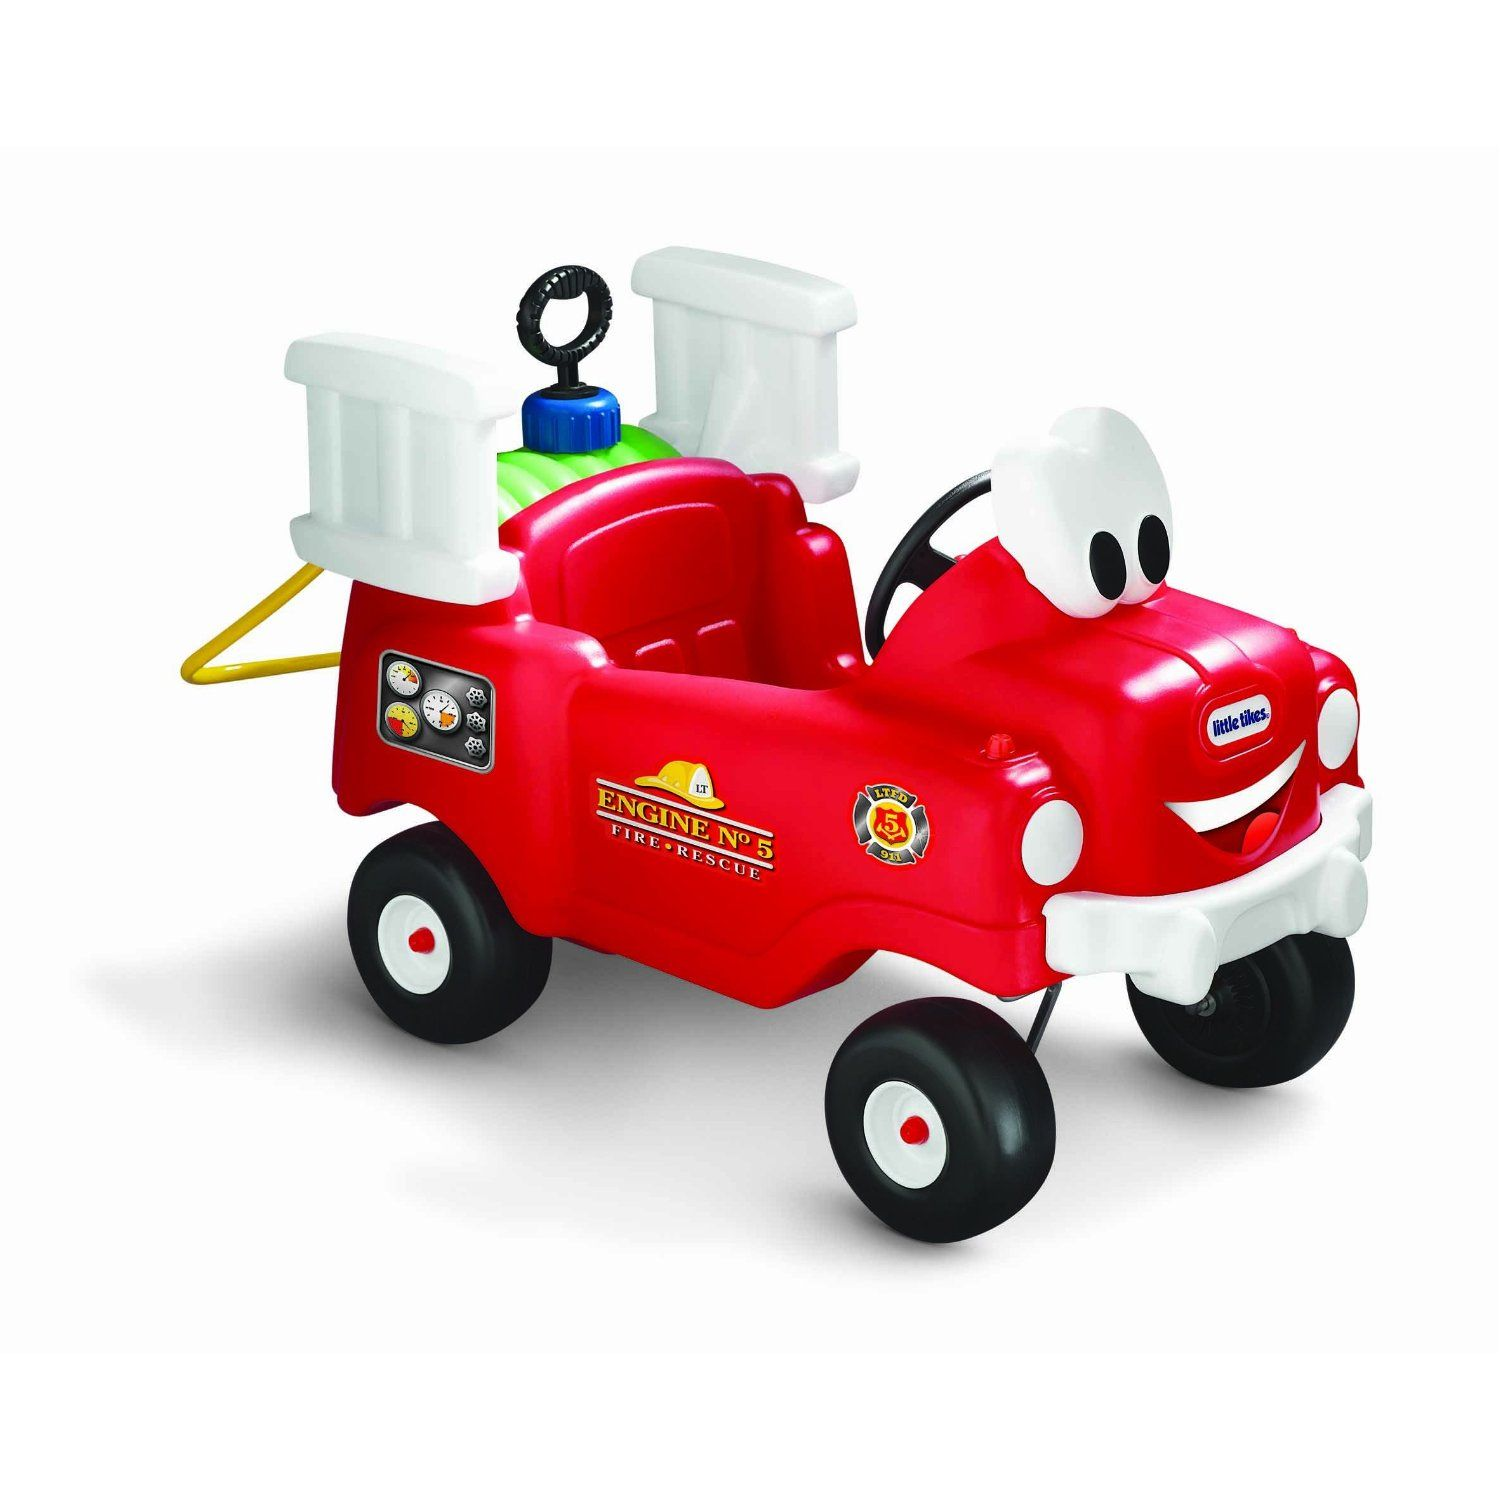 Little Tikes Spray and Rescue Fire Truck Toys